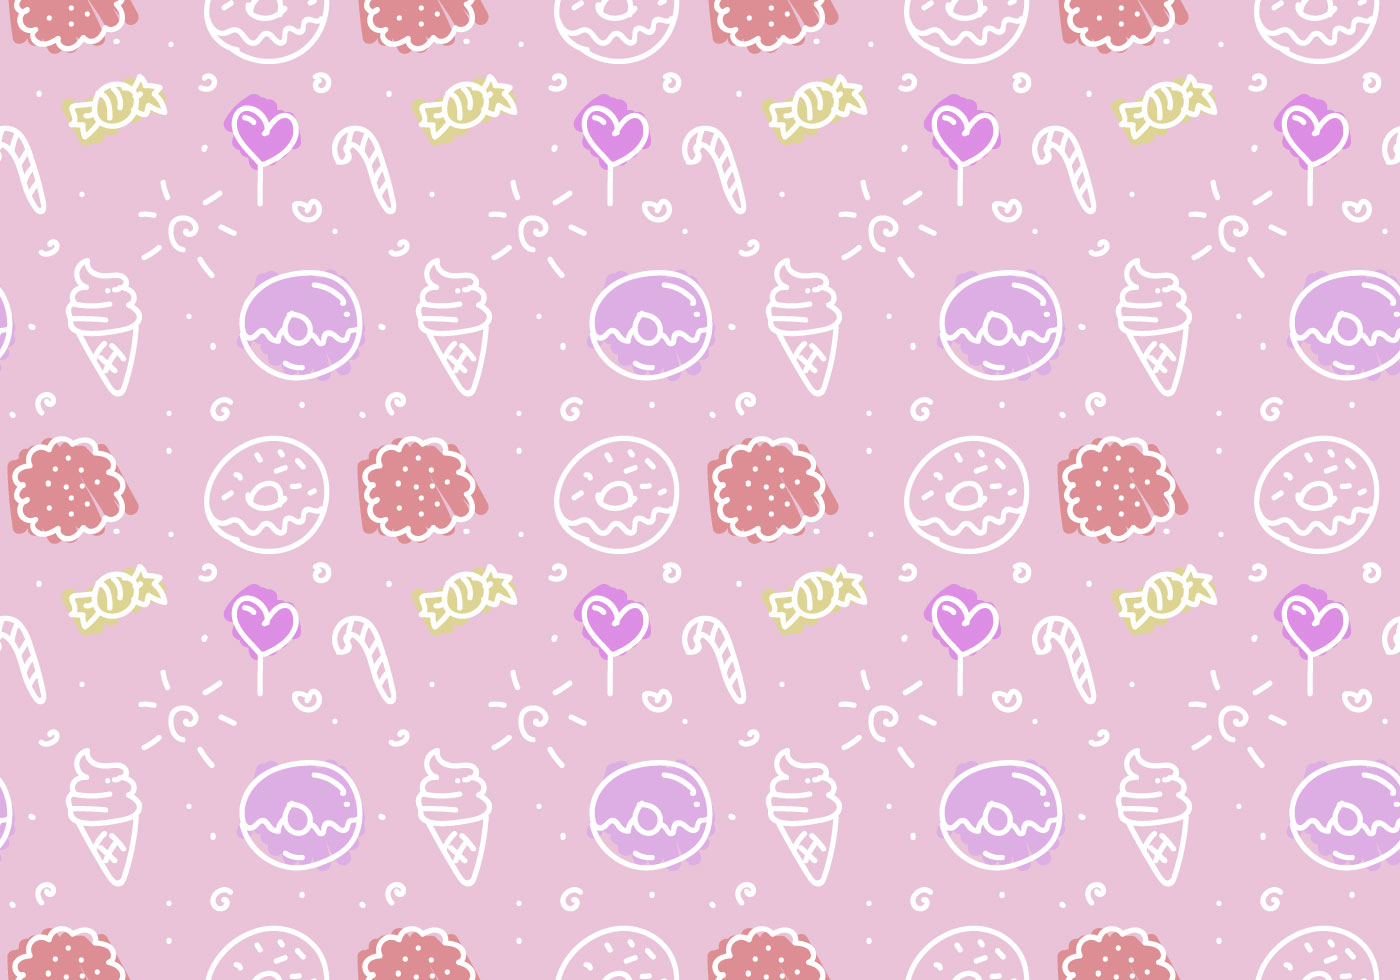 Cupcake Iphone Wallpaper Free Pink Cake Vector Pattern Download Free Vectors